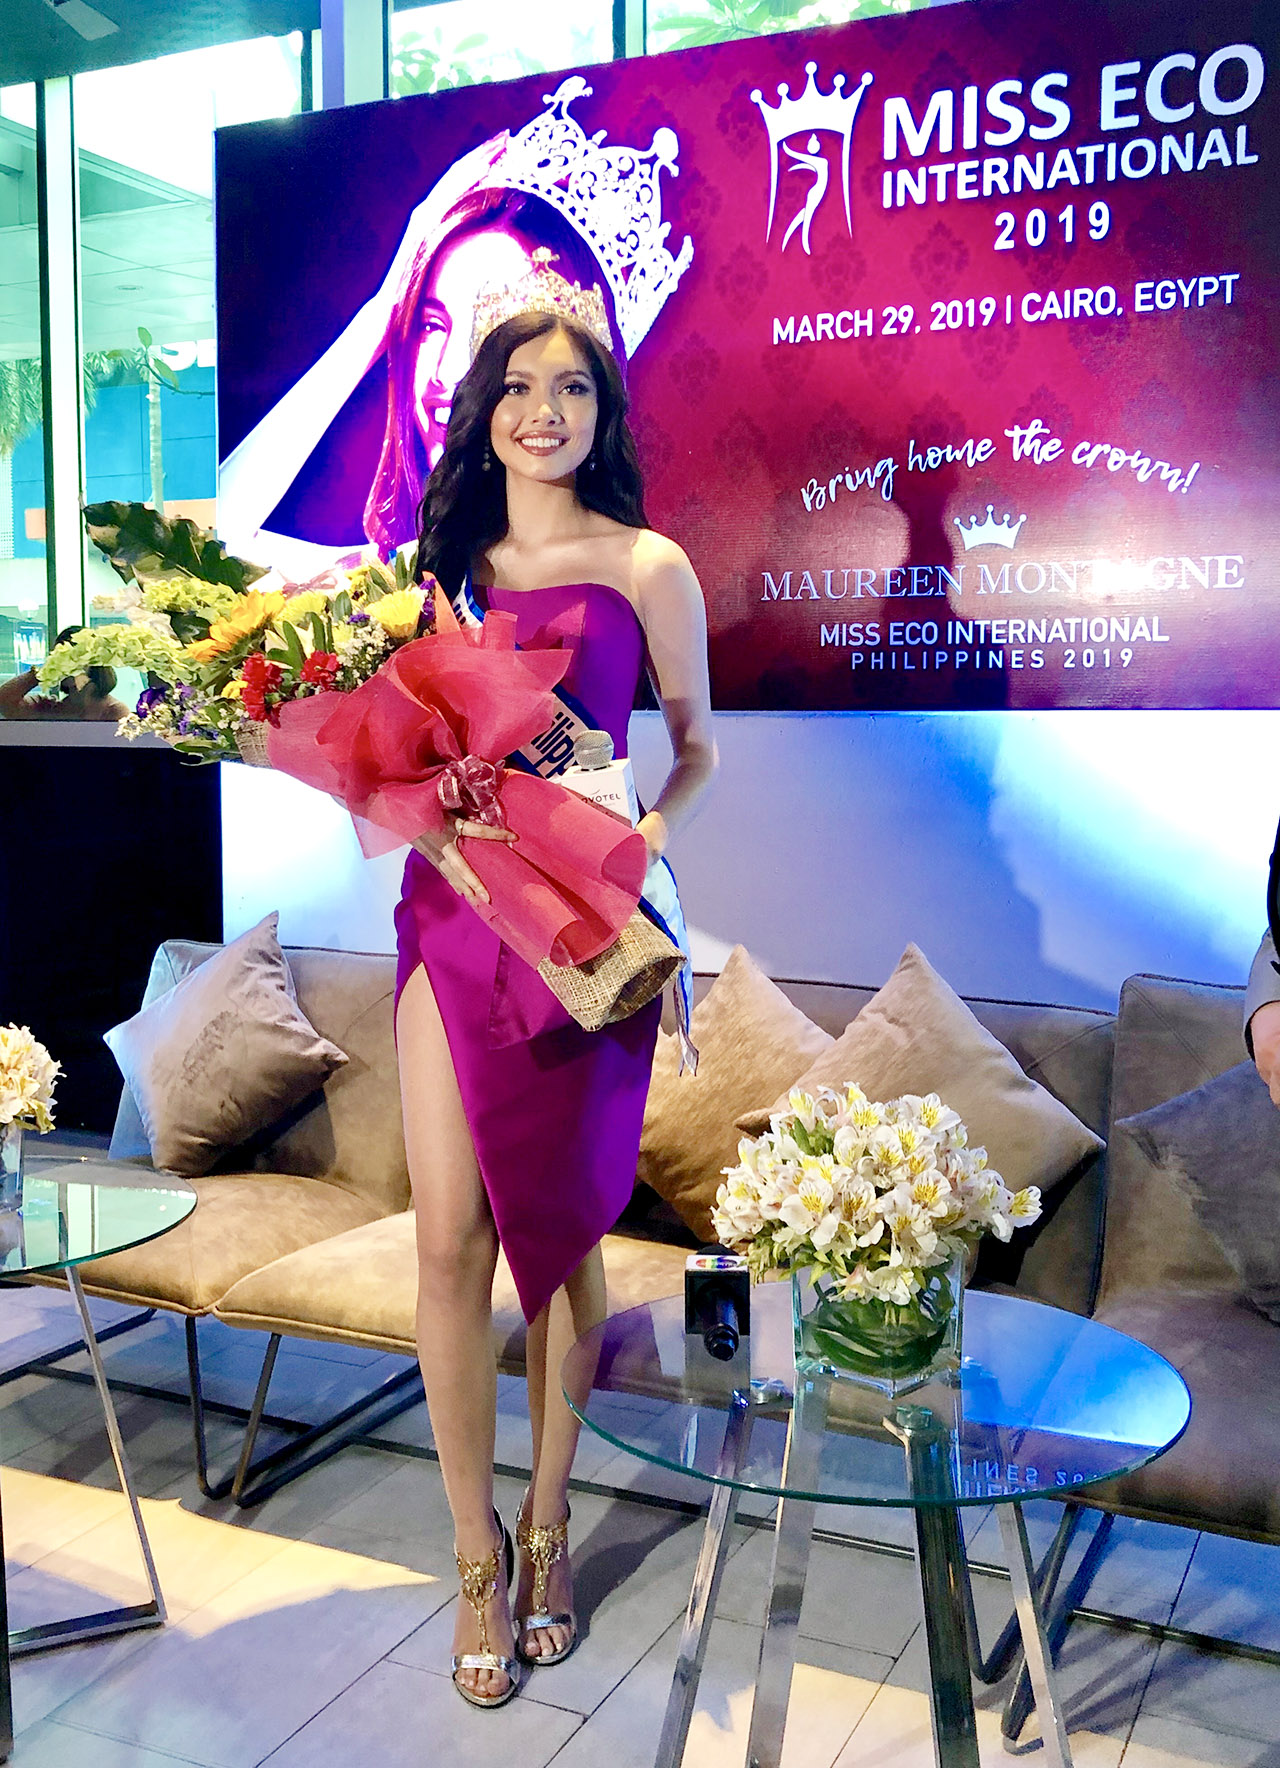 HOPING FOR BACK-TO-BACK. Maureen hopes to duplicate the success of Cynthia Thomalla, who won the title in Egypt last year.